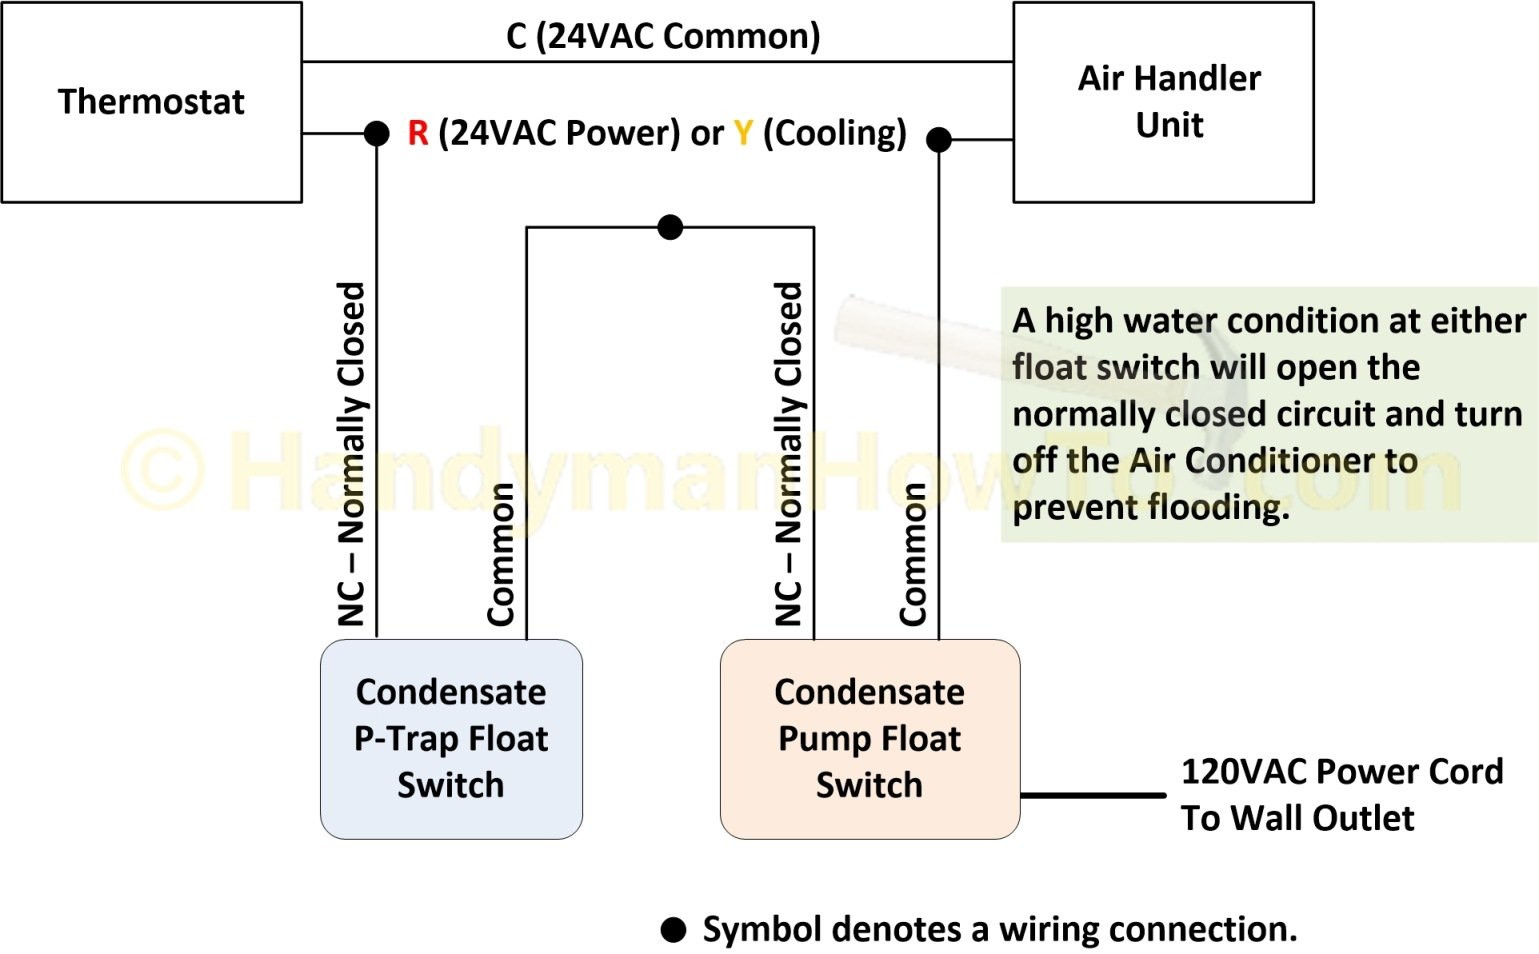 Air Conditioner P Trap Float Switch and Condensate Pump Wiring Diagram